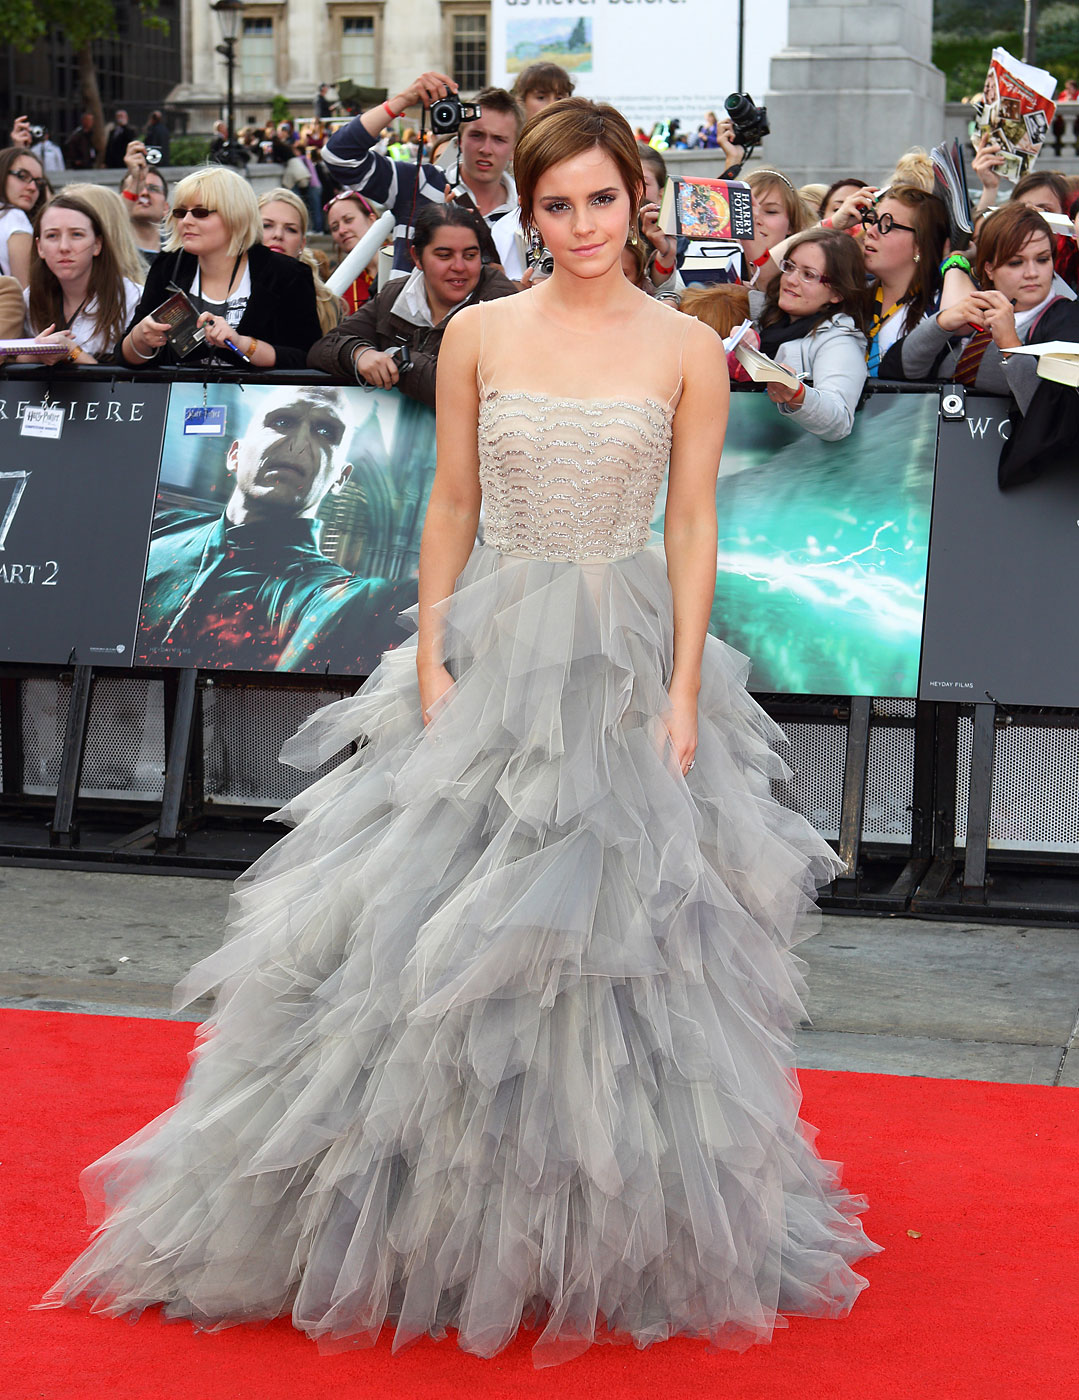 Emma Watson wears Oscar de la Renta to the world premiere of Harry Potter And The Deathly Hallows Part 2 at Trafalgar Square on July 7, 2011 in London, England.